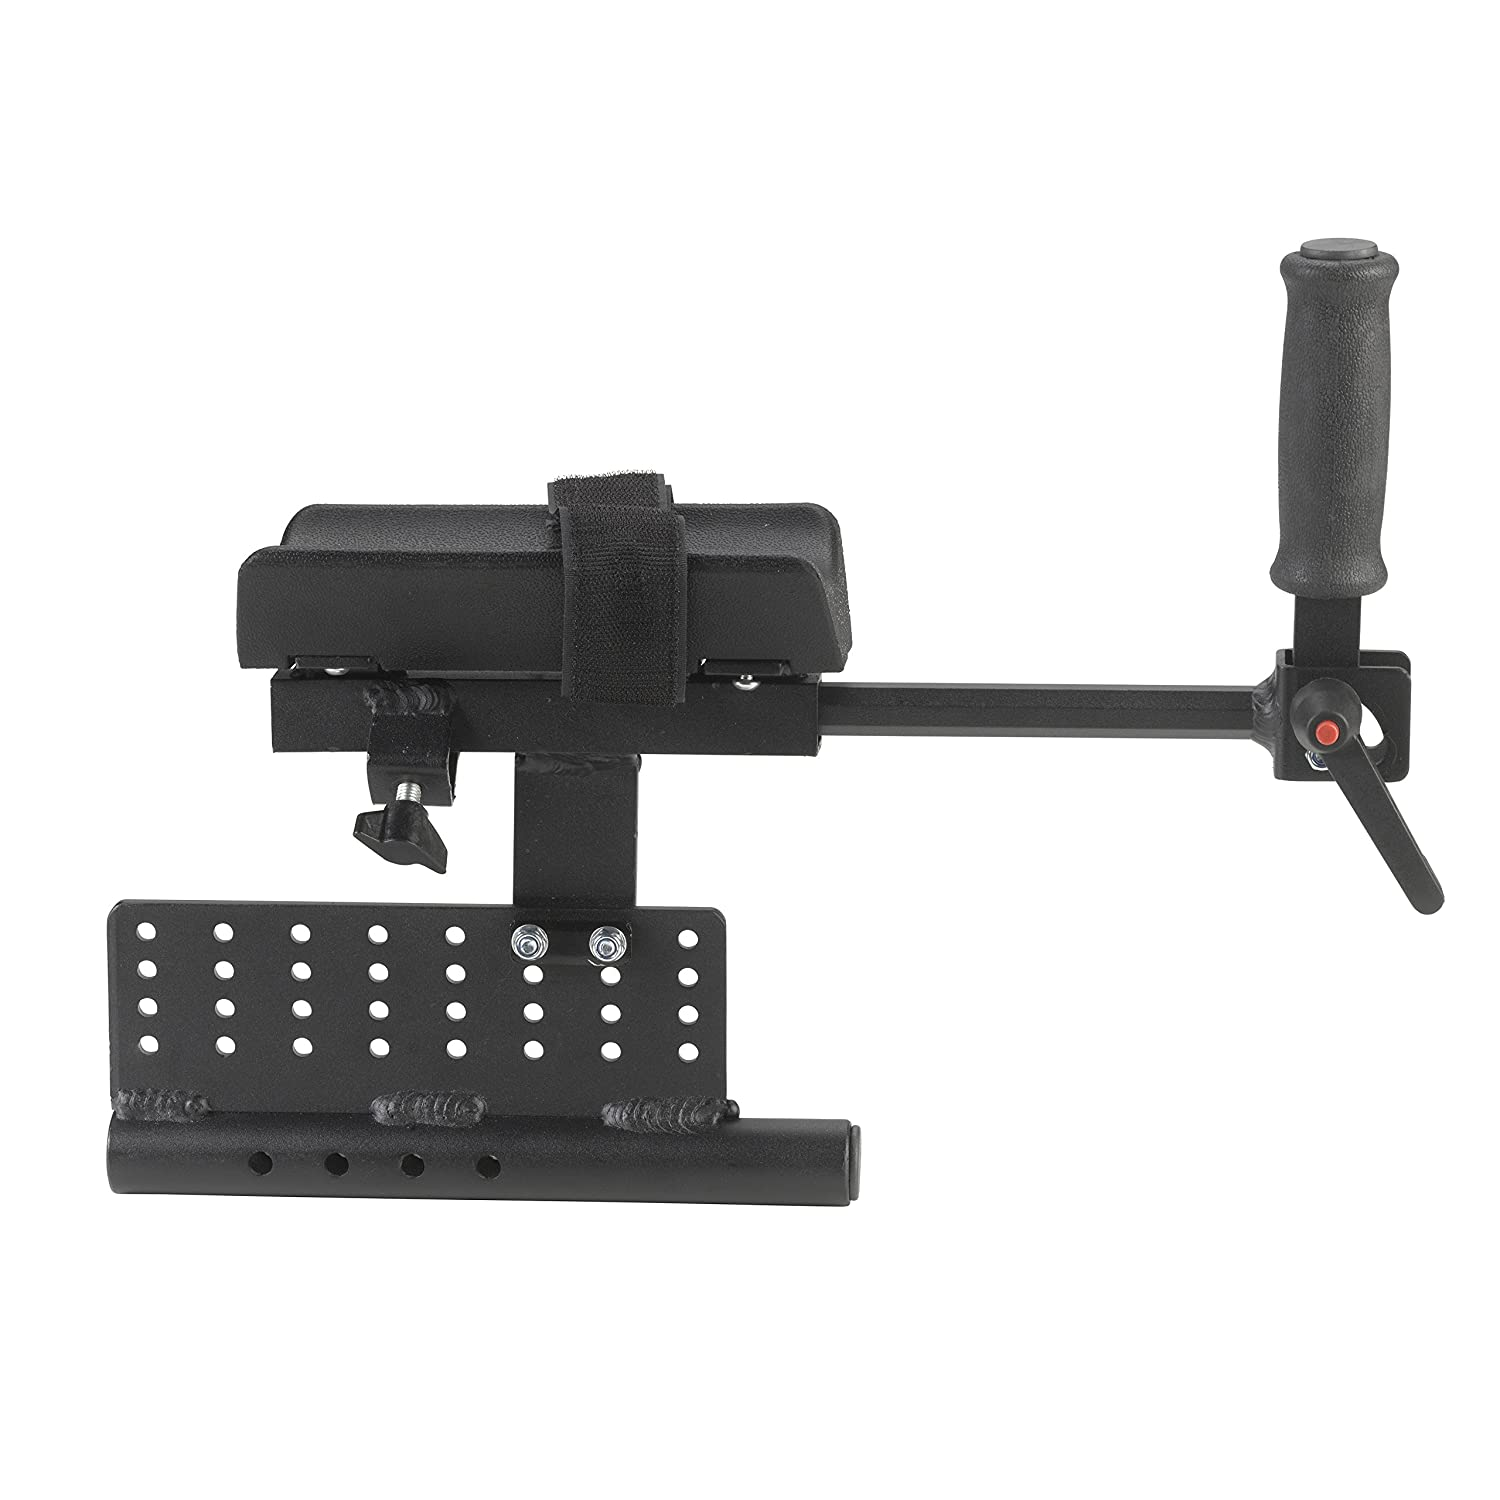 Amazon.com: Drive Nimbo Forearm Platform Attachment, Large ...